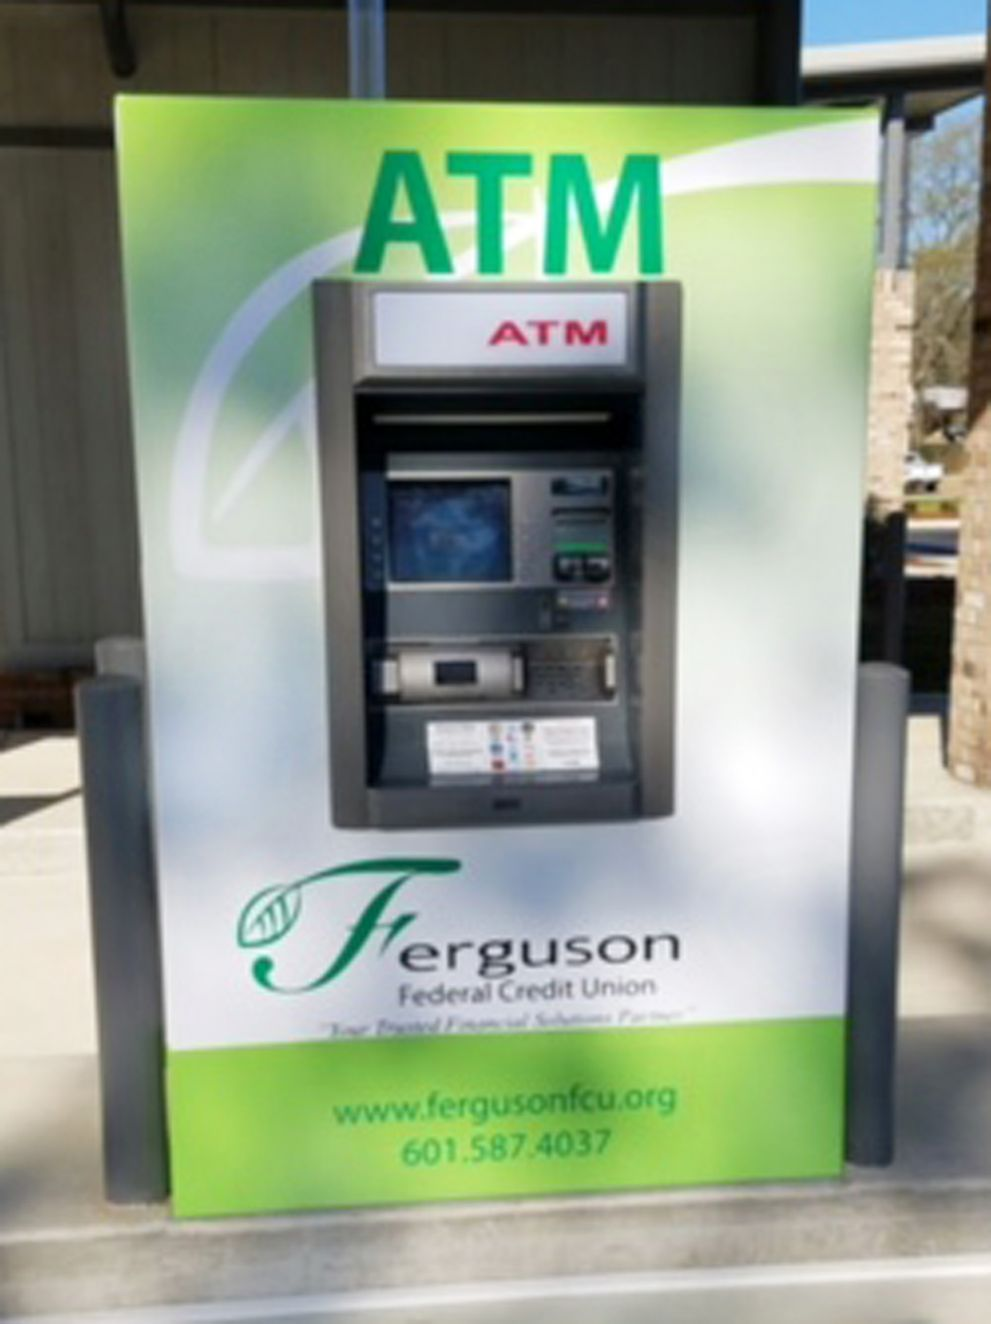 Ferguson FCU partners with Dolphin Debit to manage its ATMs